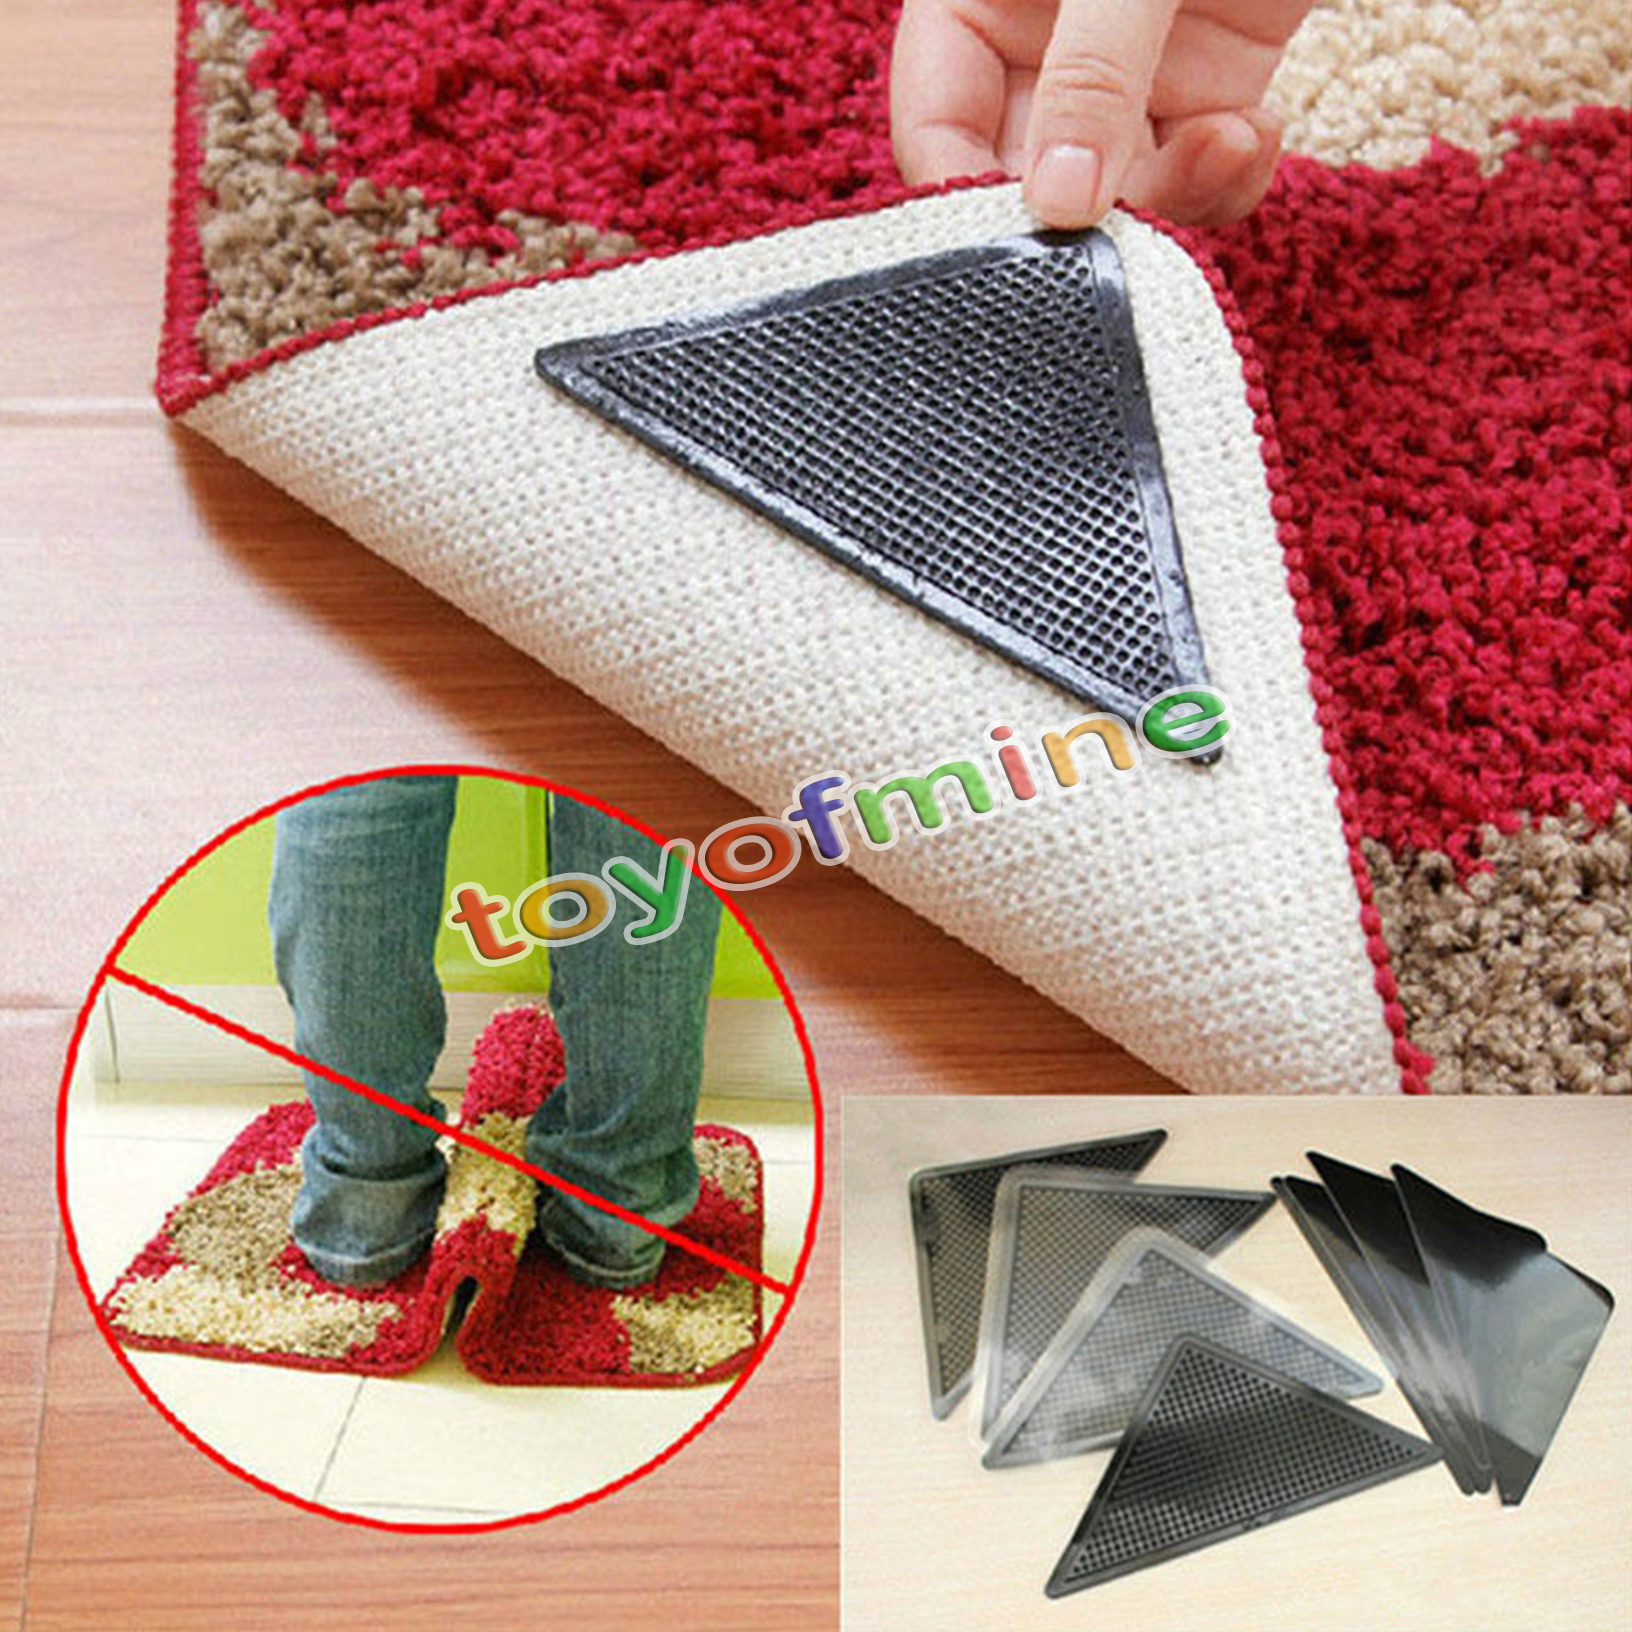 Ruggies Rug Carpet Mat Grippers Non Slip Grip Corners Anti